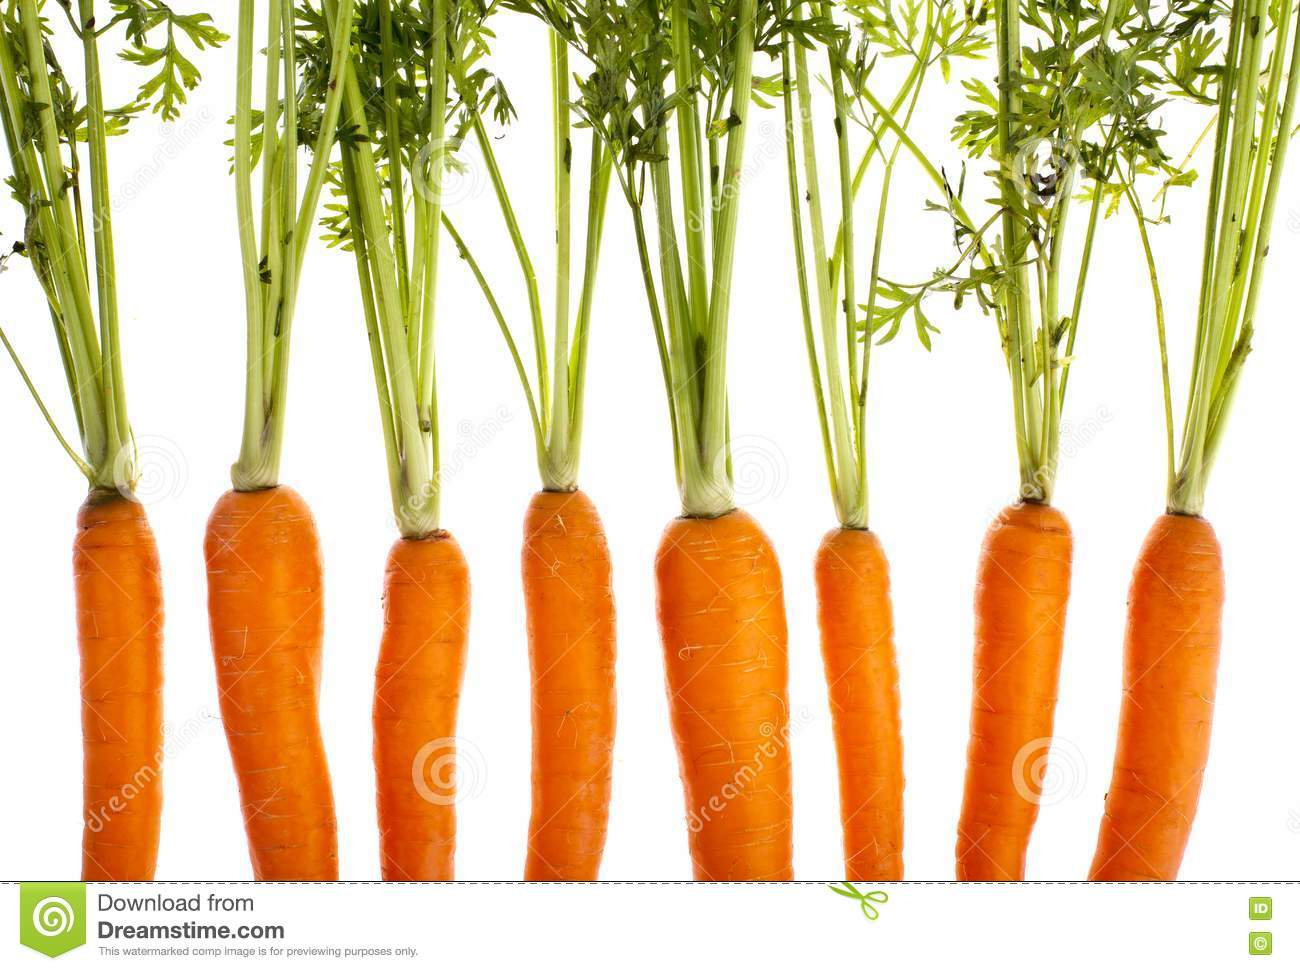 Carrots, Completely Isolated Royalty Free Stock Images - Image ...: dreamstime.com/royalty-free-stock-images-carrots-completely...